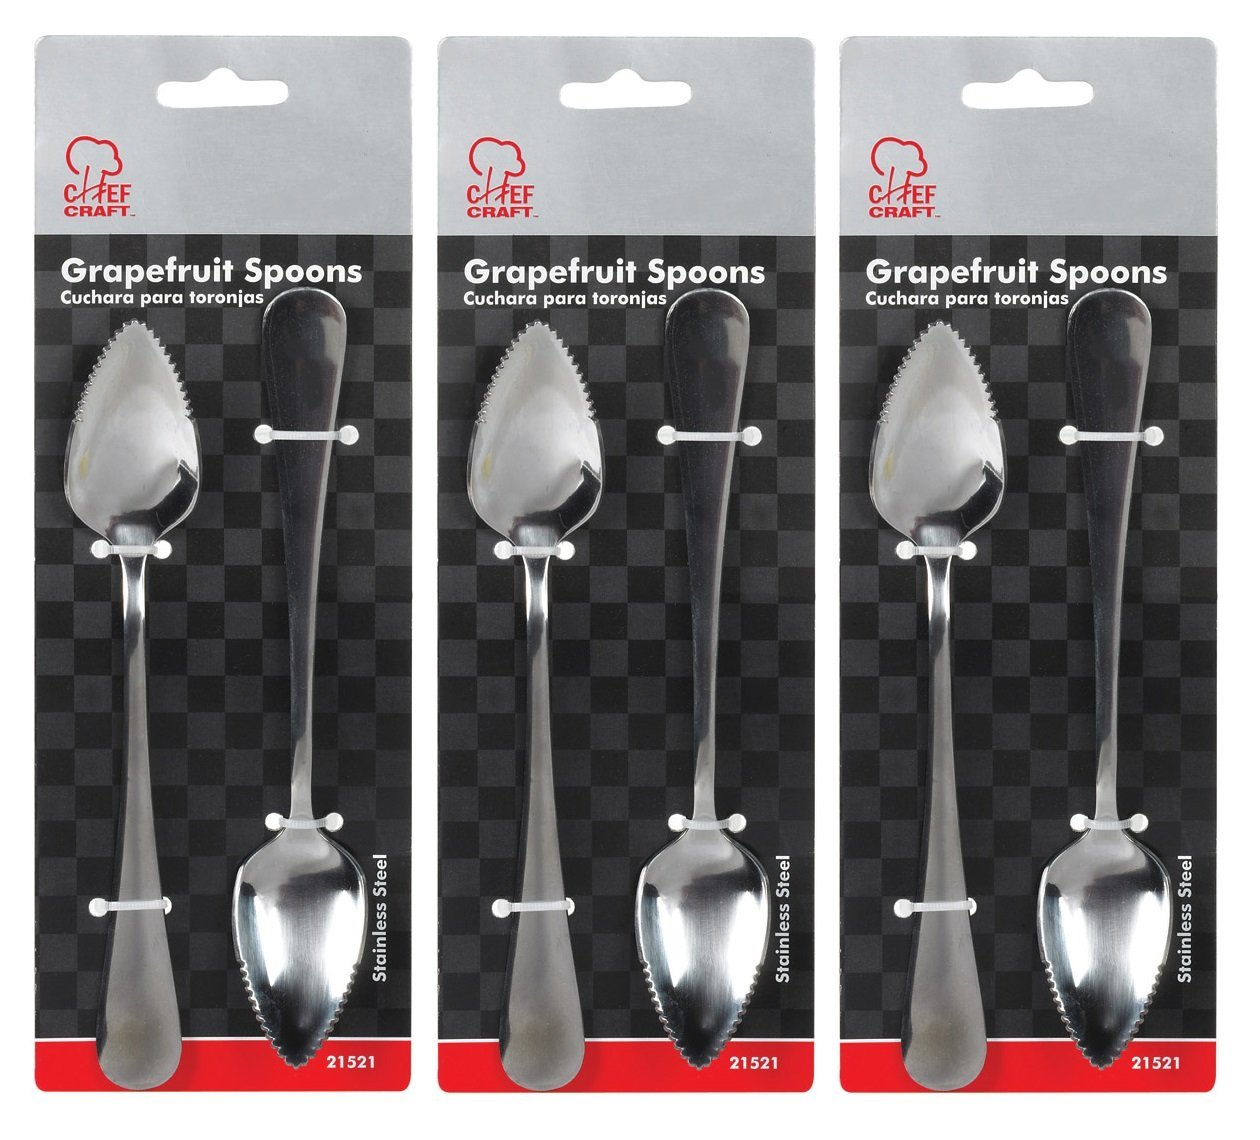 Stainless Steel Grapefruit Spoons - 3 Packs of 2, Specifically designed for eating grapefruit By Chef Craft